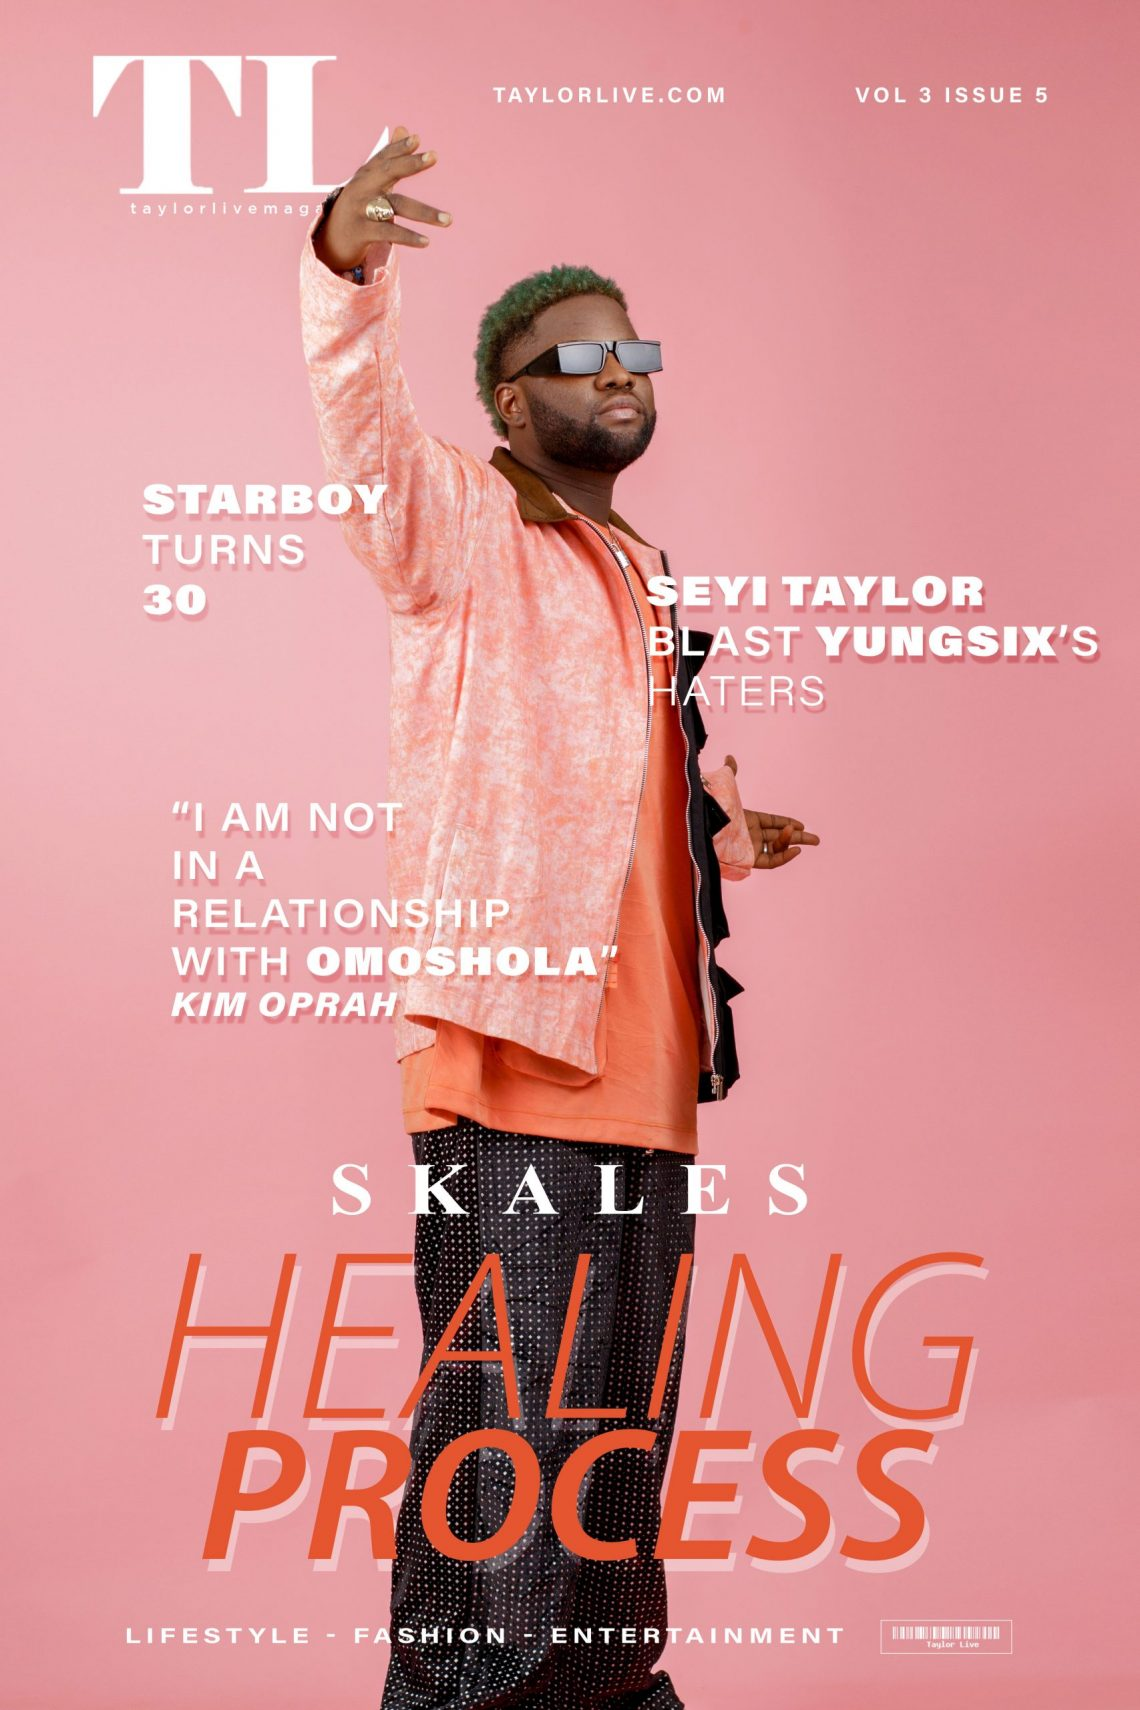 Healing Process – Skales Covers Taylor Live Magazine's Latest Issue